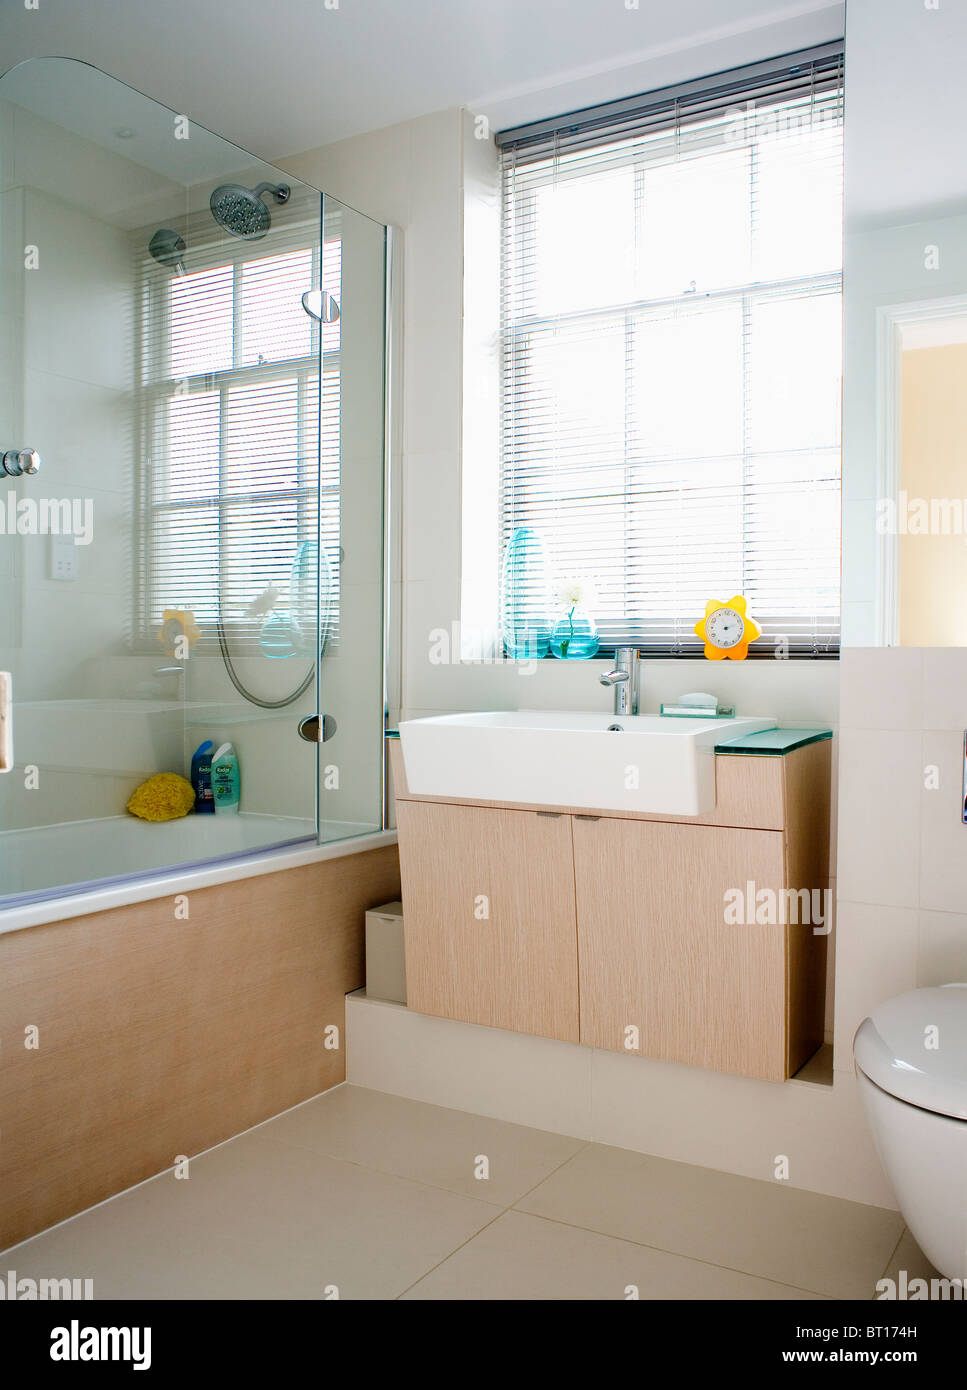 Glass shower screen on bath in modern white bathroom with white basin  on pale wood vanity. Glass Shower Screen On Bath In Modern Spanish Bathroom With Voile